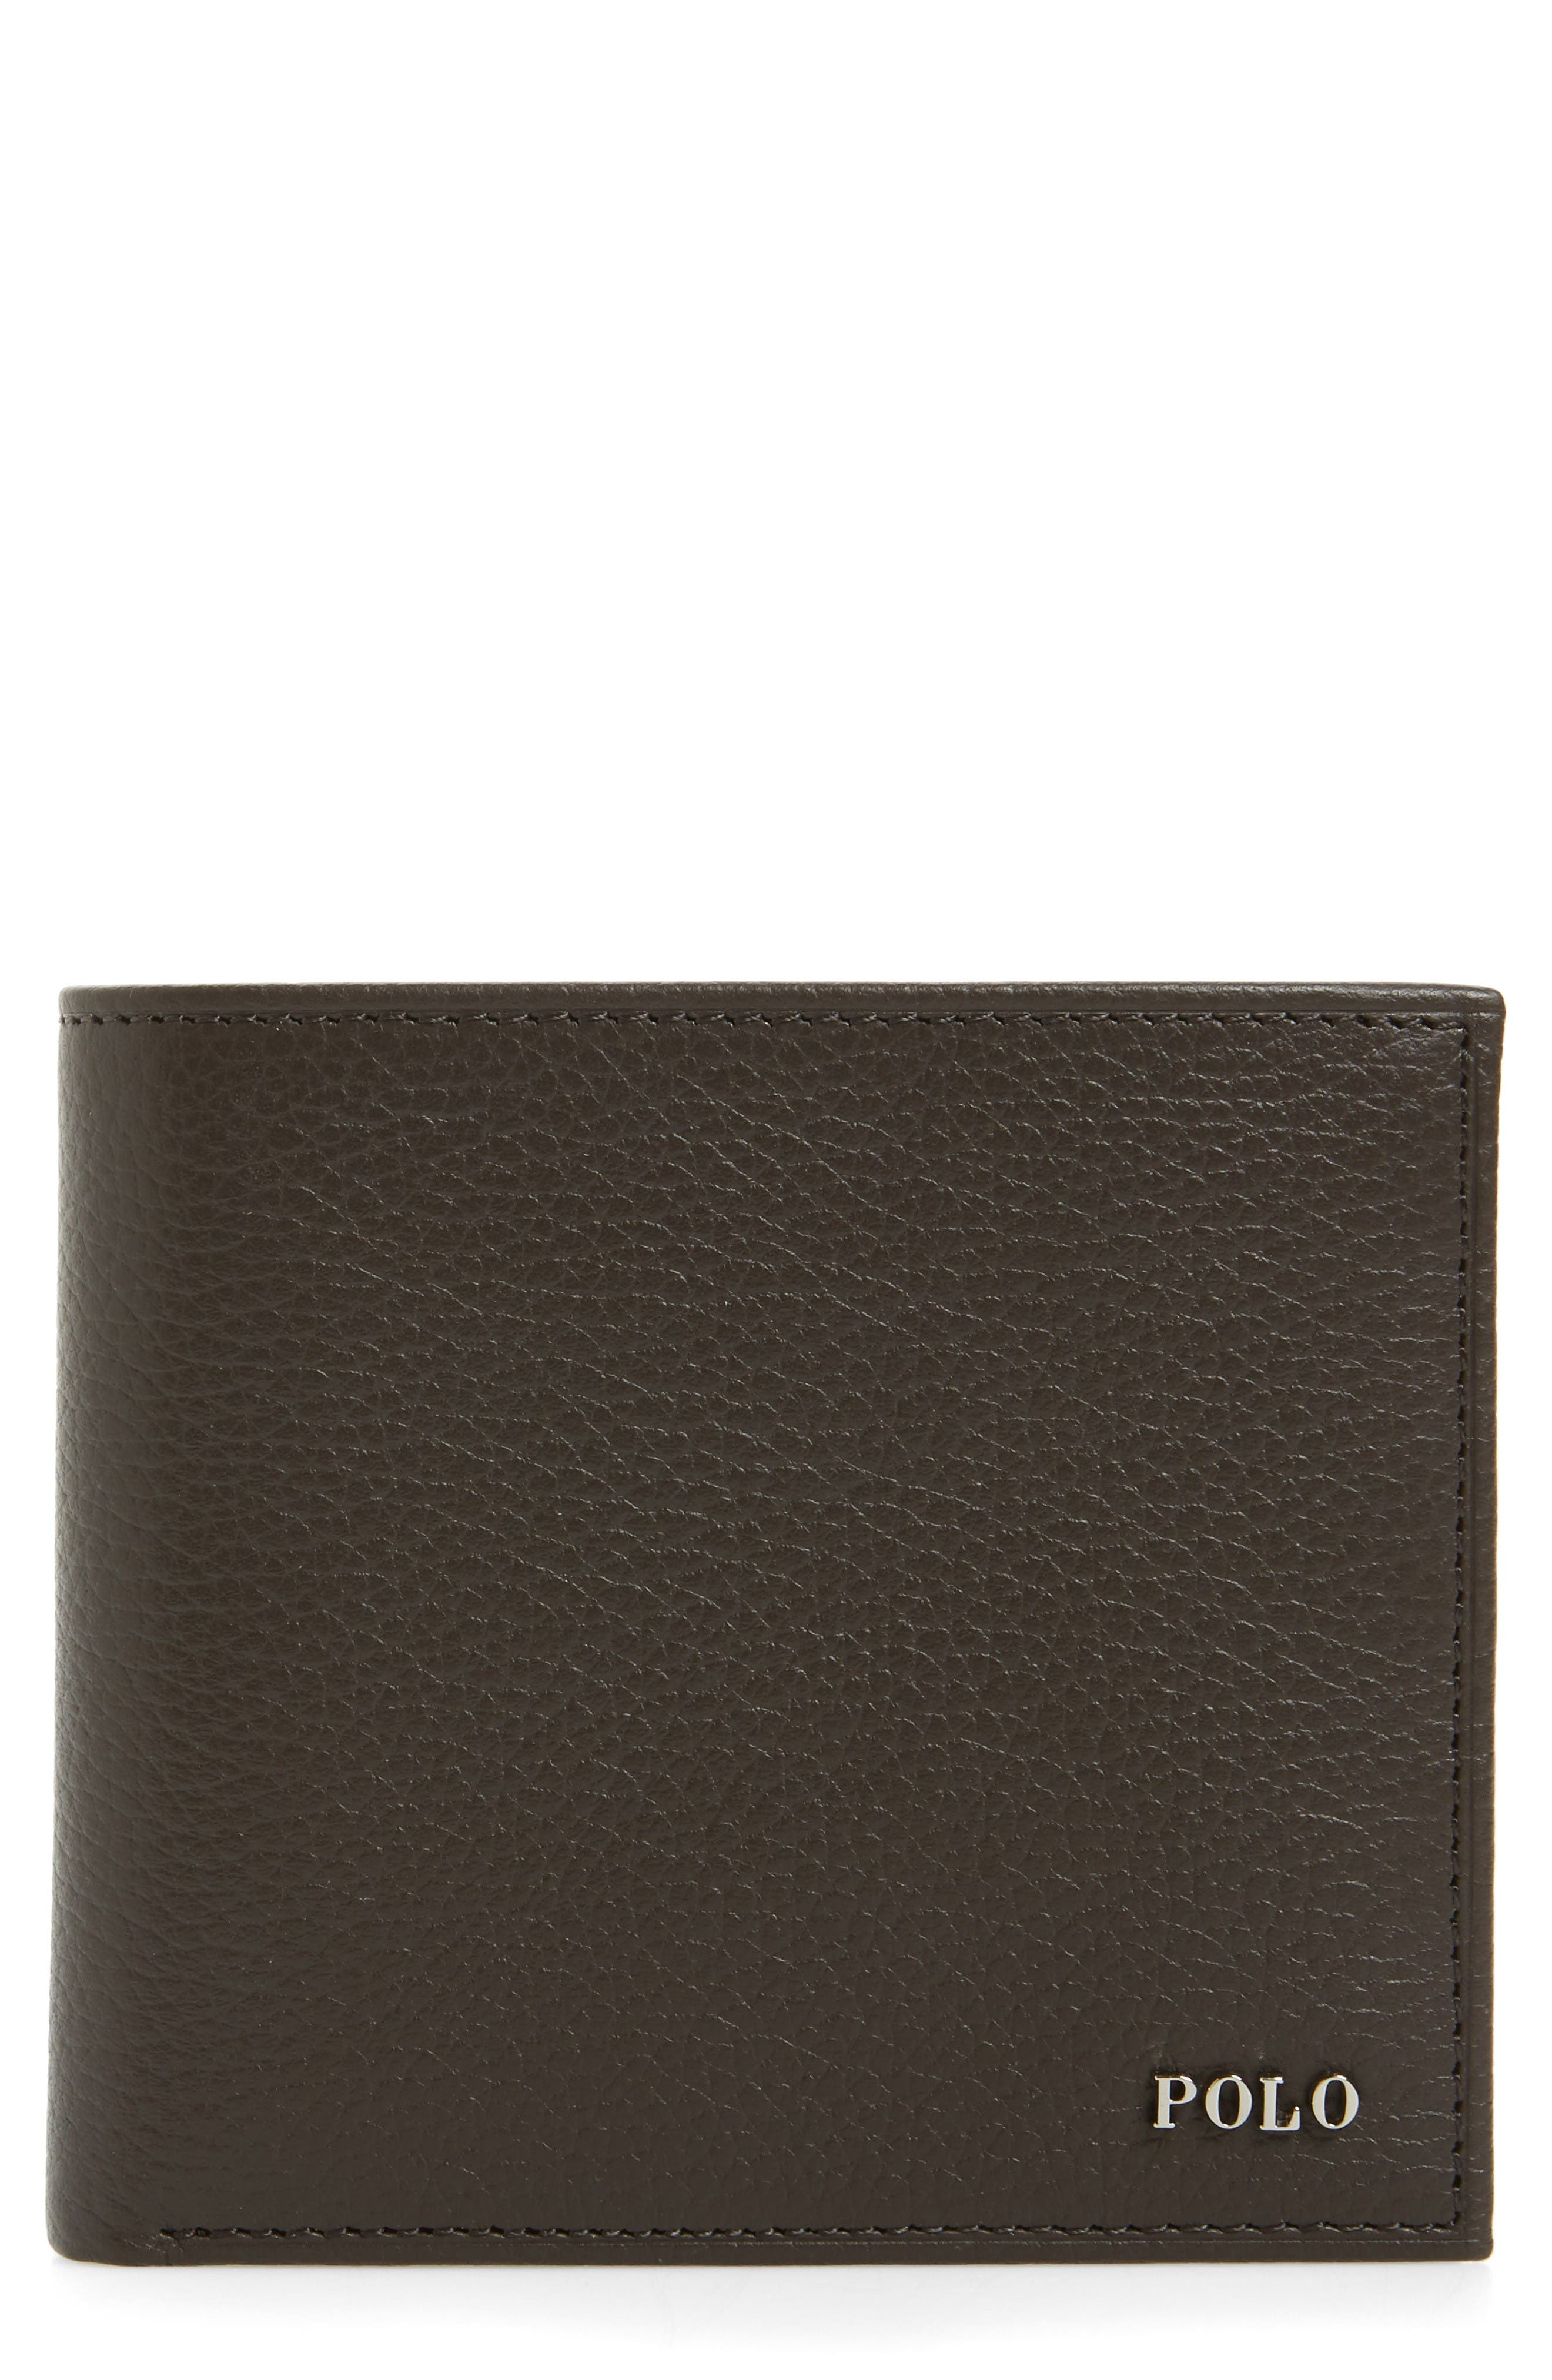 Alternate Image 1 Selected - Polo Ralph Lauren Leather Wallet